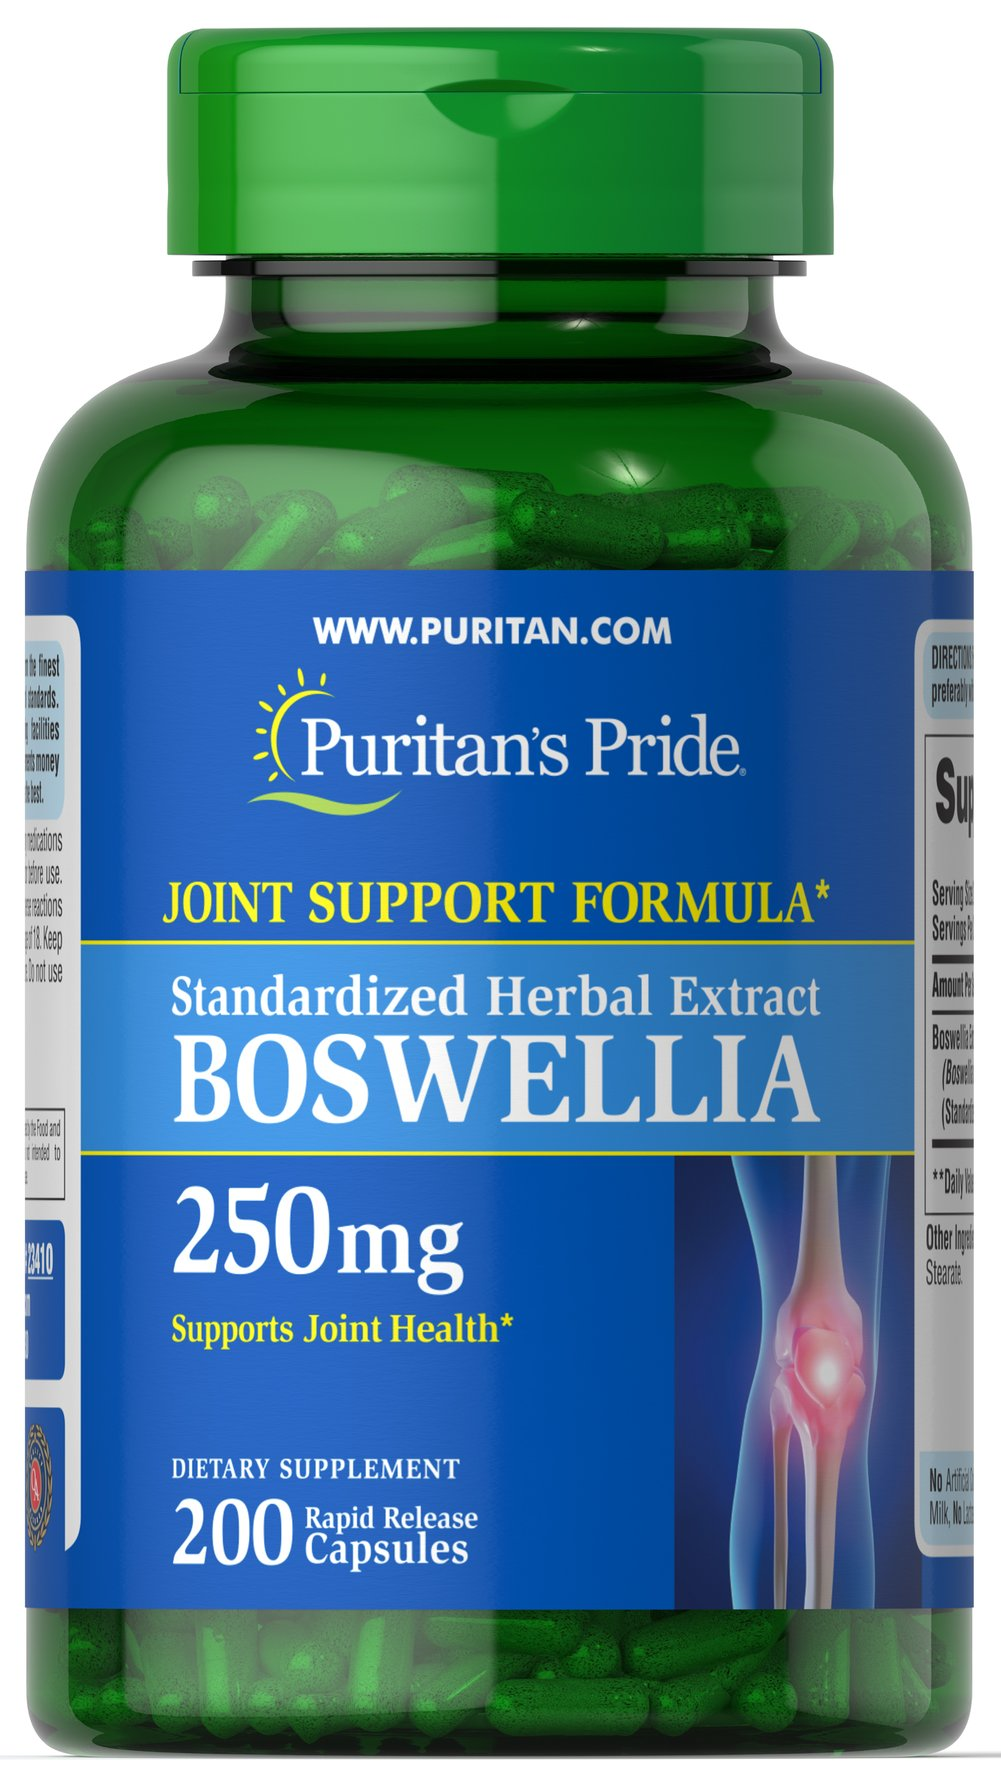 Boswellia Standardized Extract 250mg  200 Capsules 250 mg $31.98